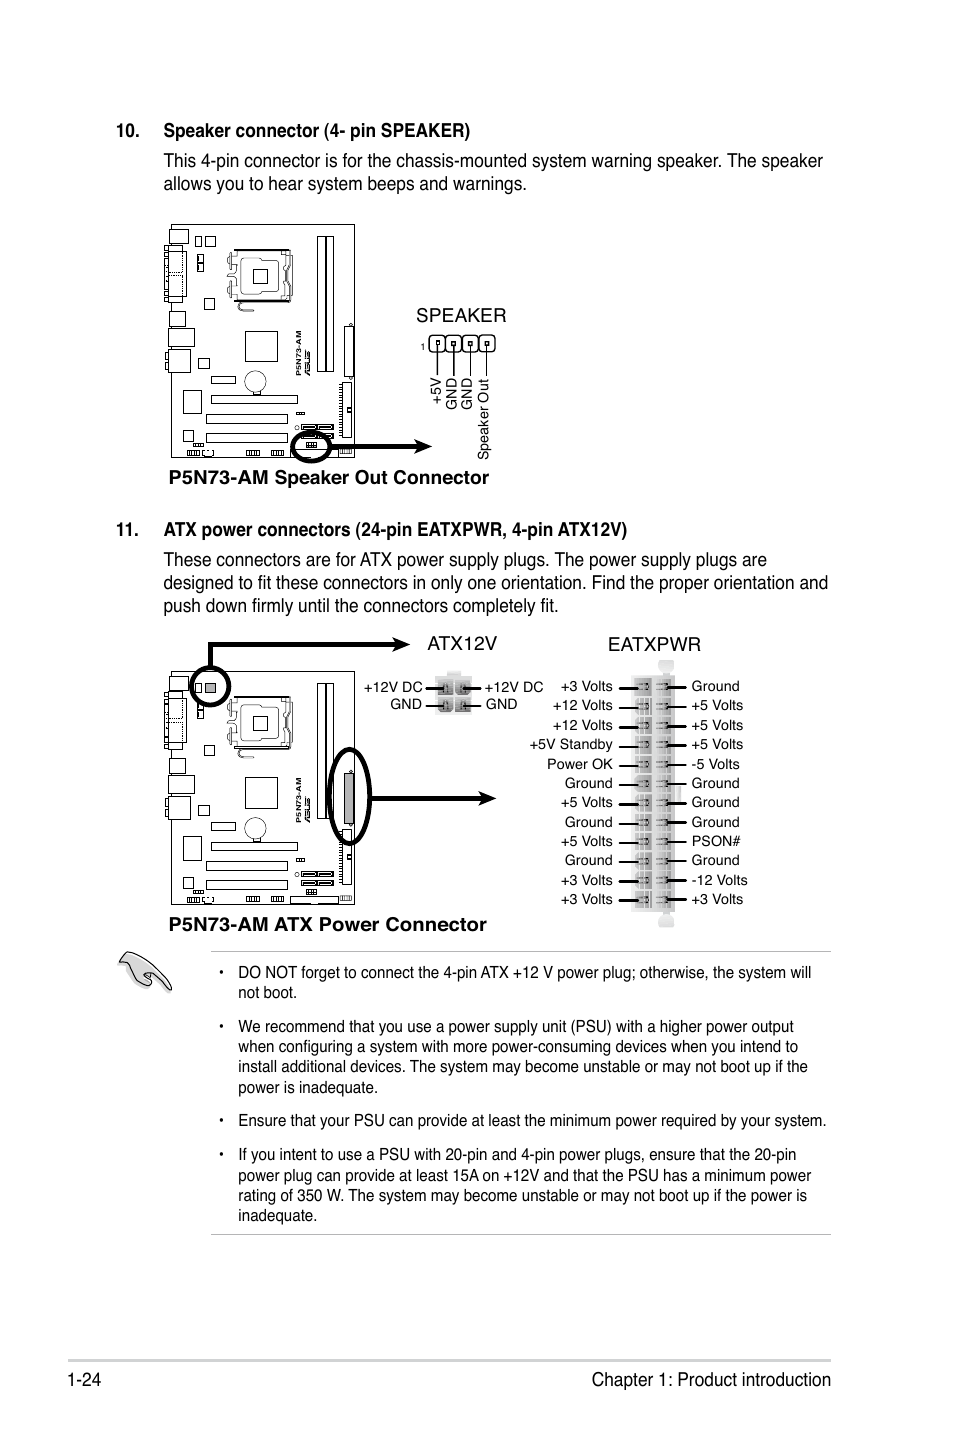 P5n73 Am Atx Power Connector Eatxpwr Atx12v Speaker Out 12 To 24 Volt Wiring Diagram 4 Prong Asus User Manual Page 34 60